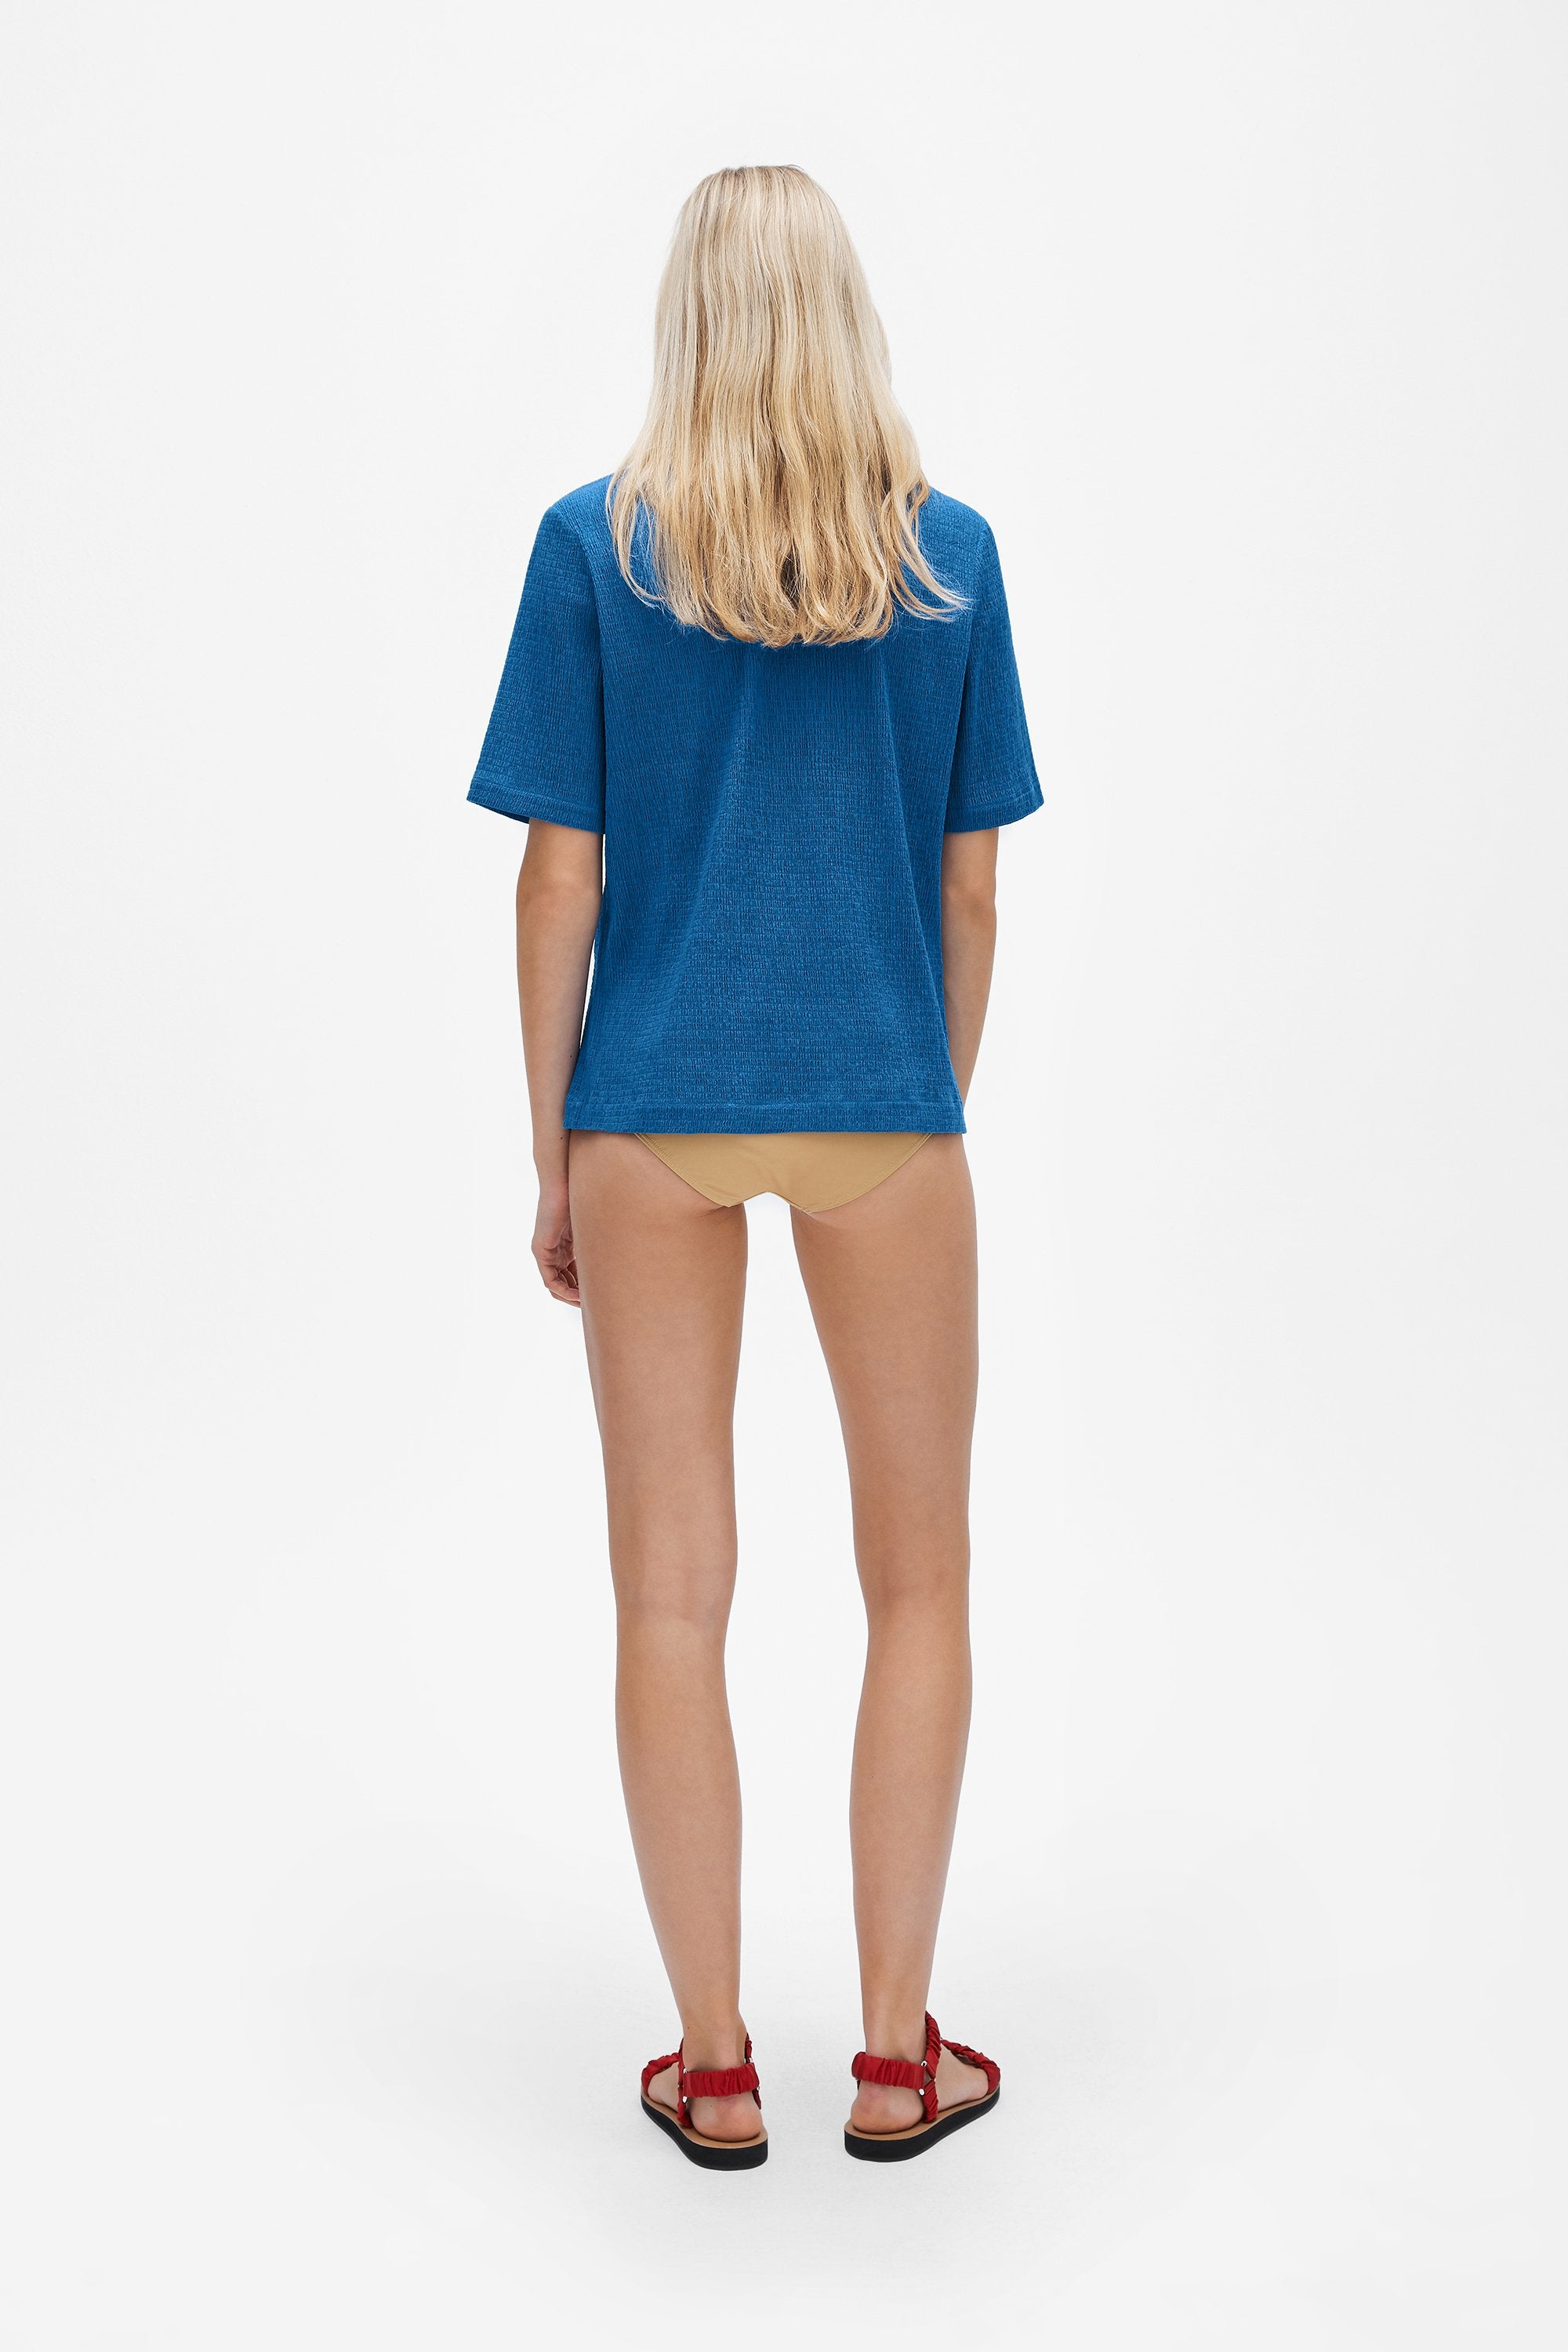 Classic t-shirt - Shirred voile - True blue - Resortwear top - Her Line